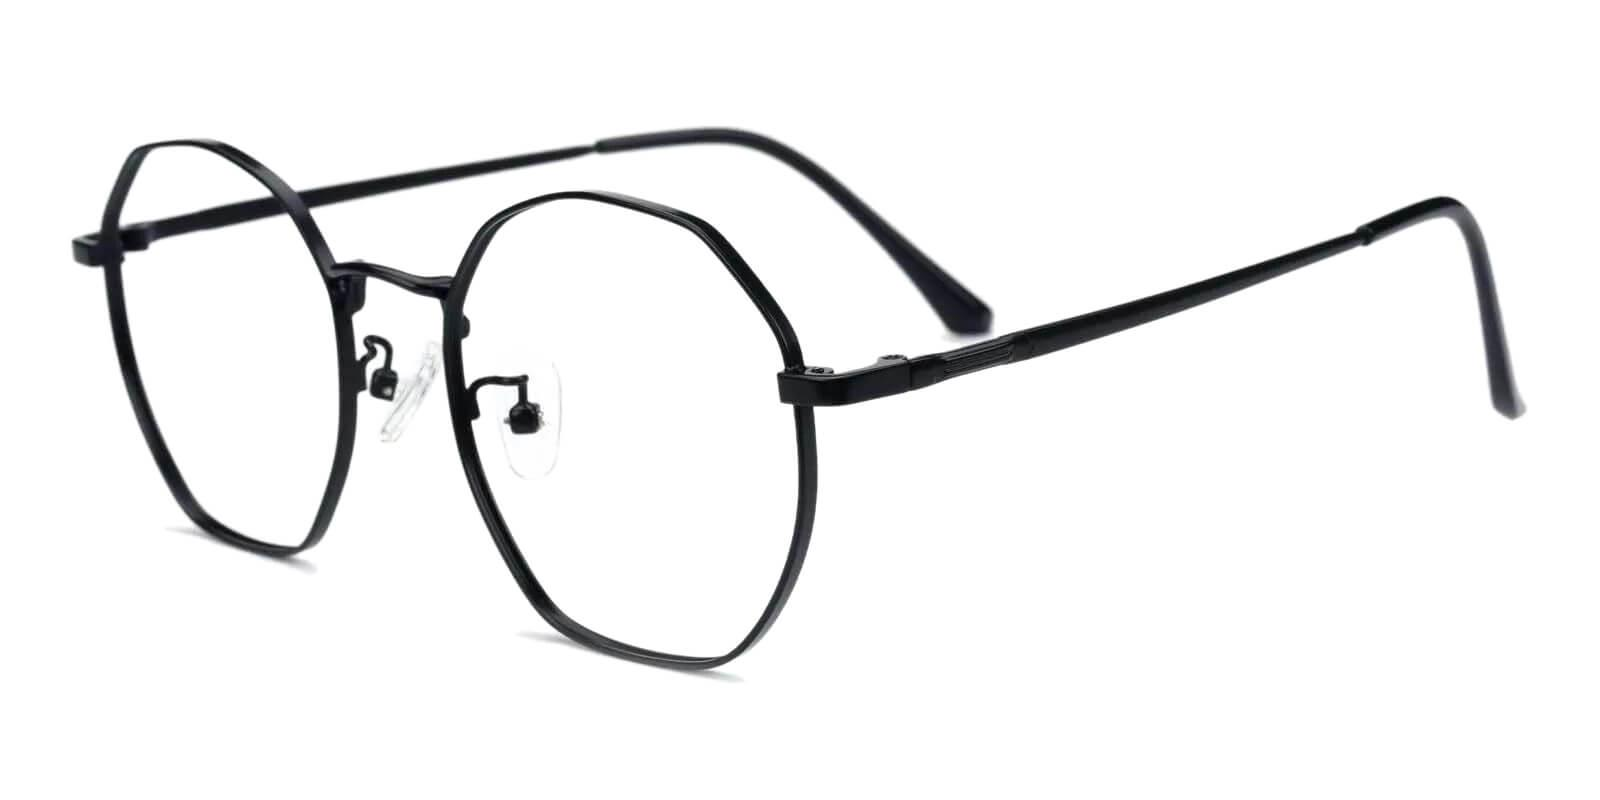 Jadeite Black Metal Eyeglasses , Fashion , NosePads Frames from ABBE Glasses